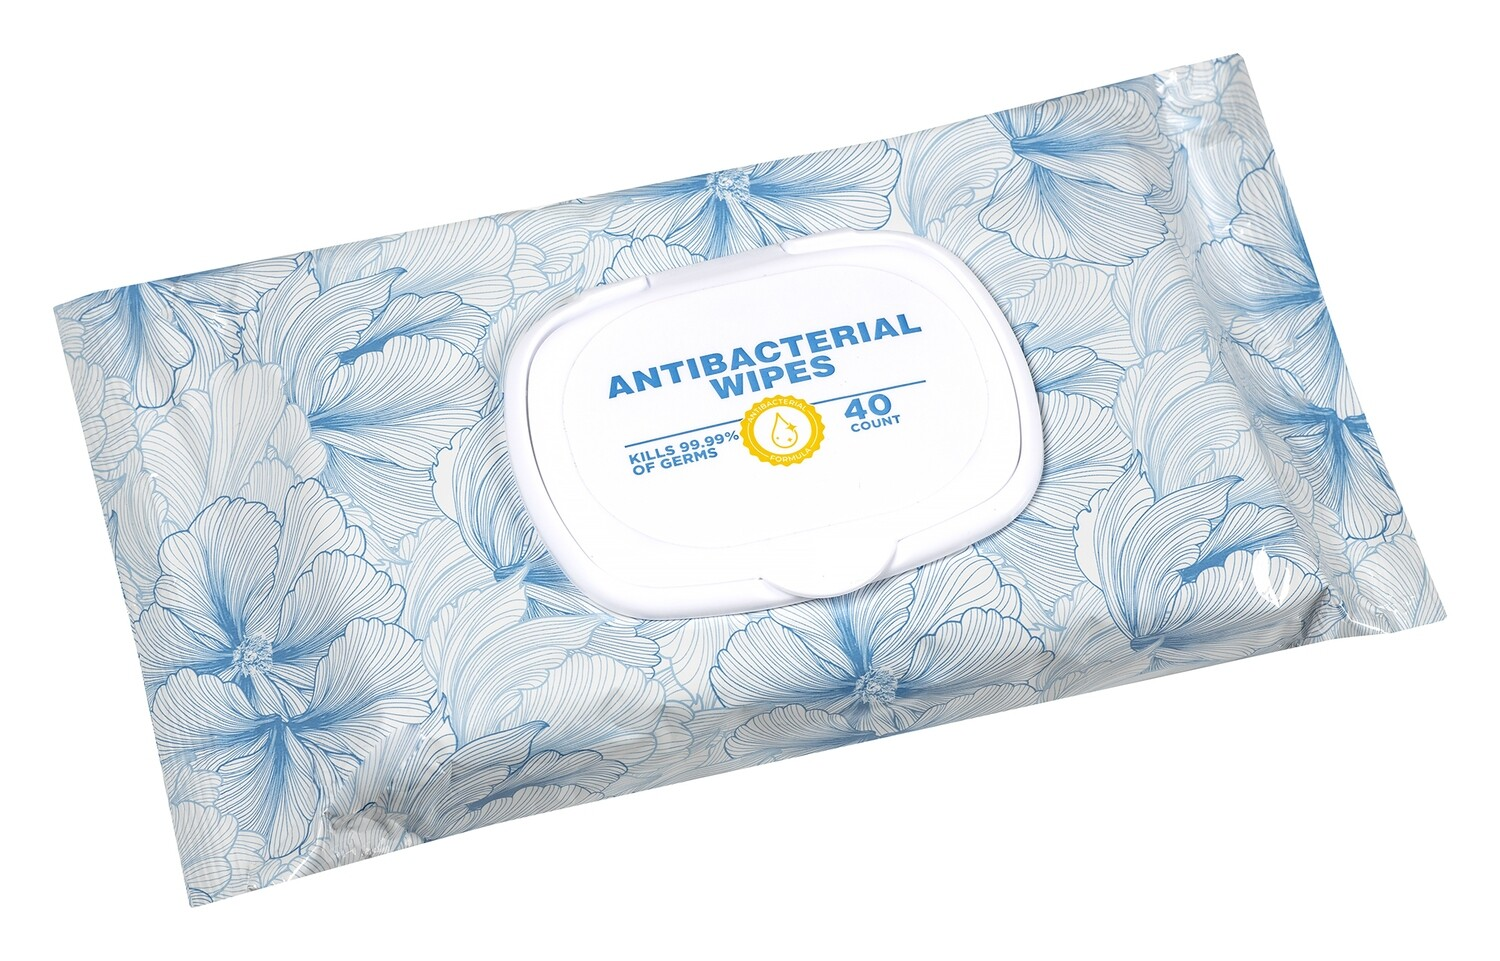 Disinfectant / Antiseptic Wipes (Pack of 40)